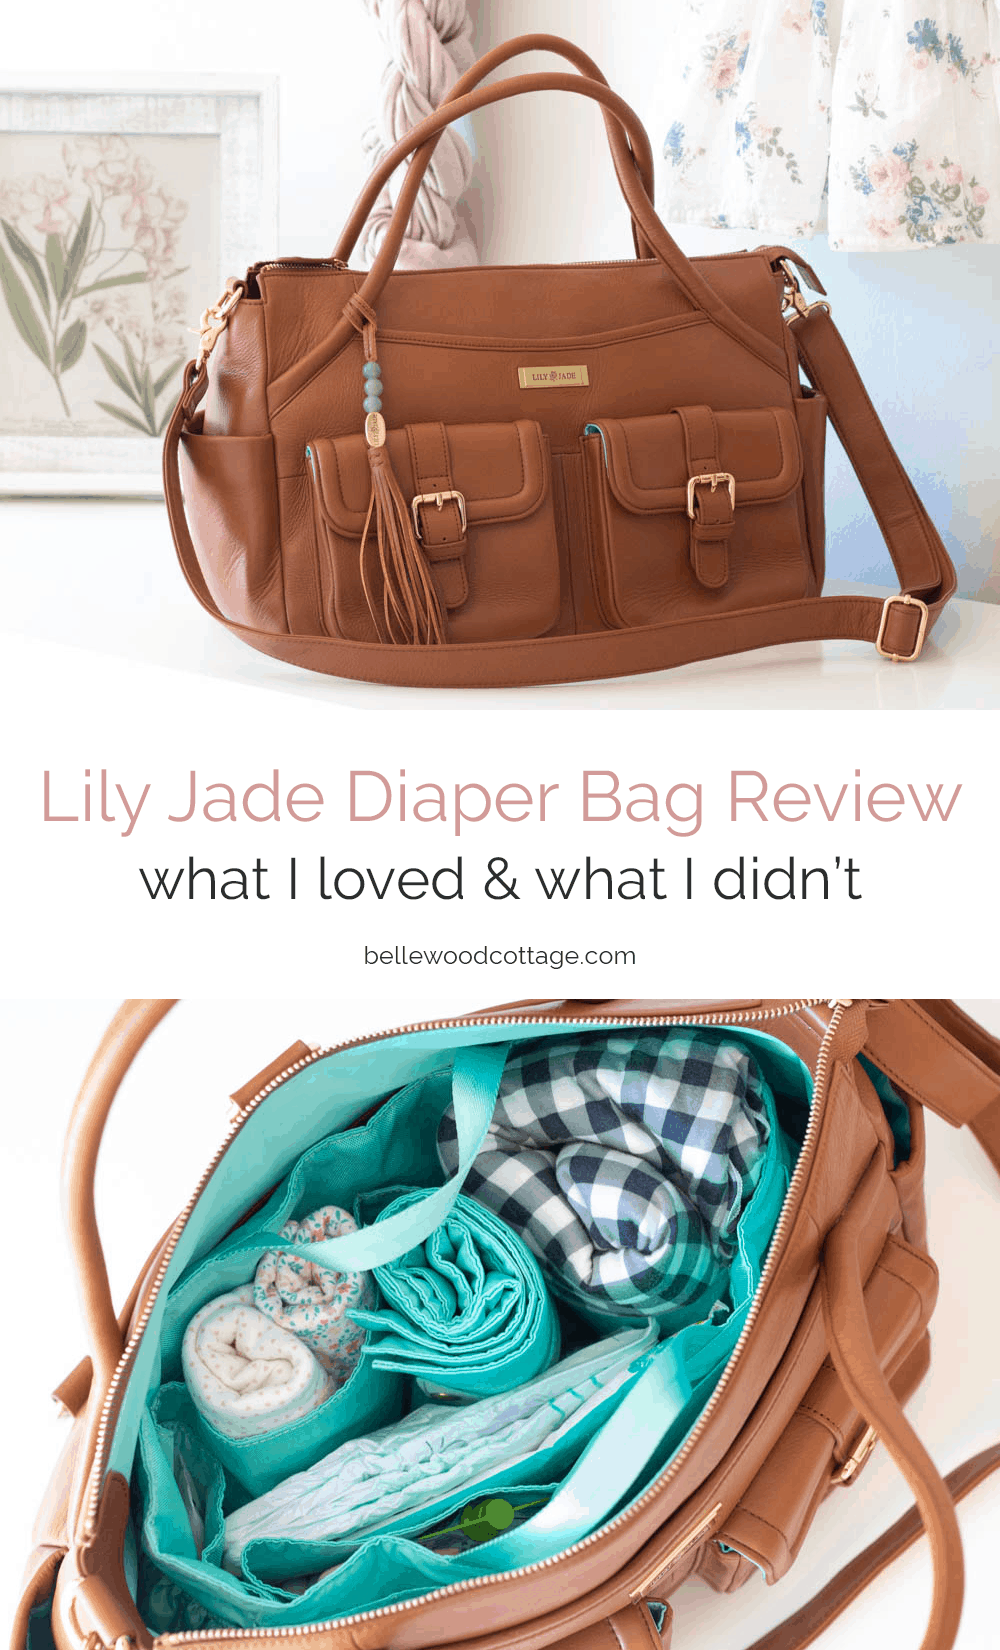 "A collage image of a large diaper bag and the interior view of the packed diaper bag with the words, ""Lily Jade Diaper Bag Review"" across the image."